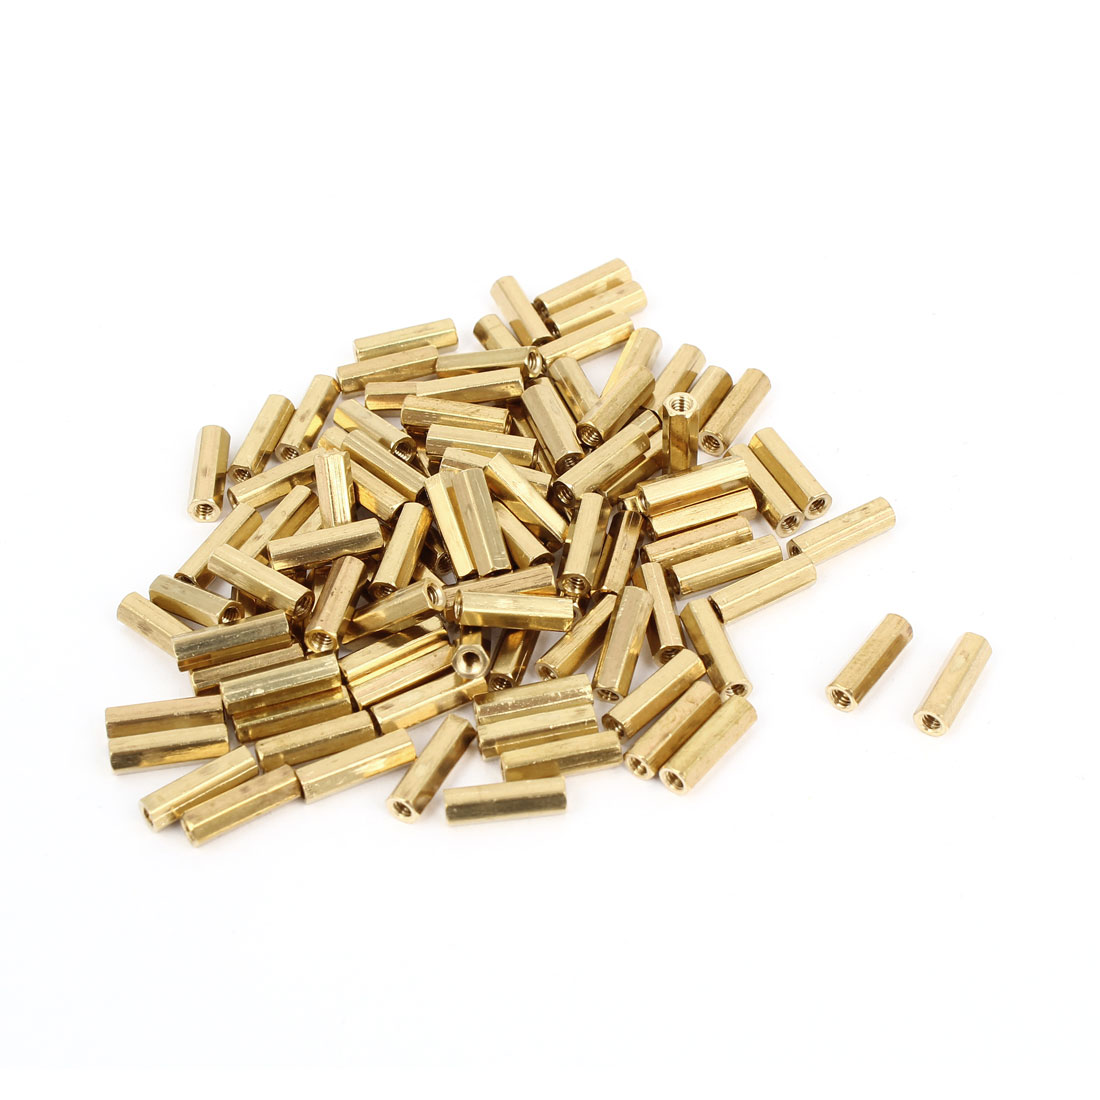 100 Pcs M2 x 10mm Gold Tone Dual Ends CCTV Camera Standoff Hexagonal Nut Spacer